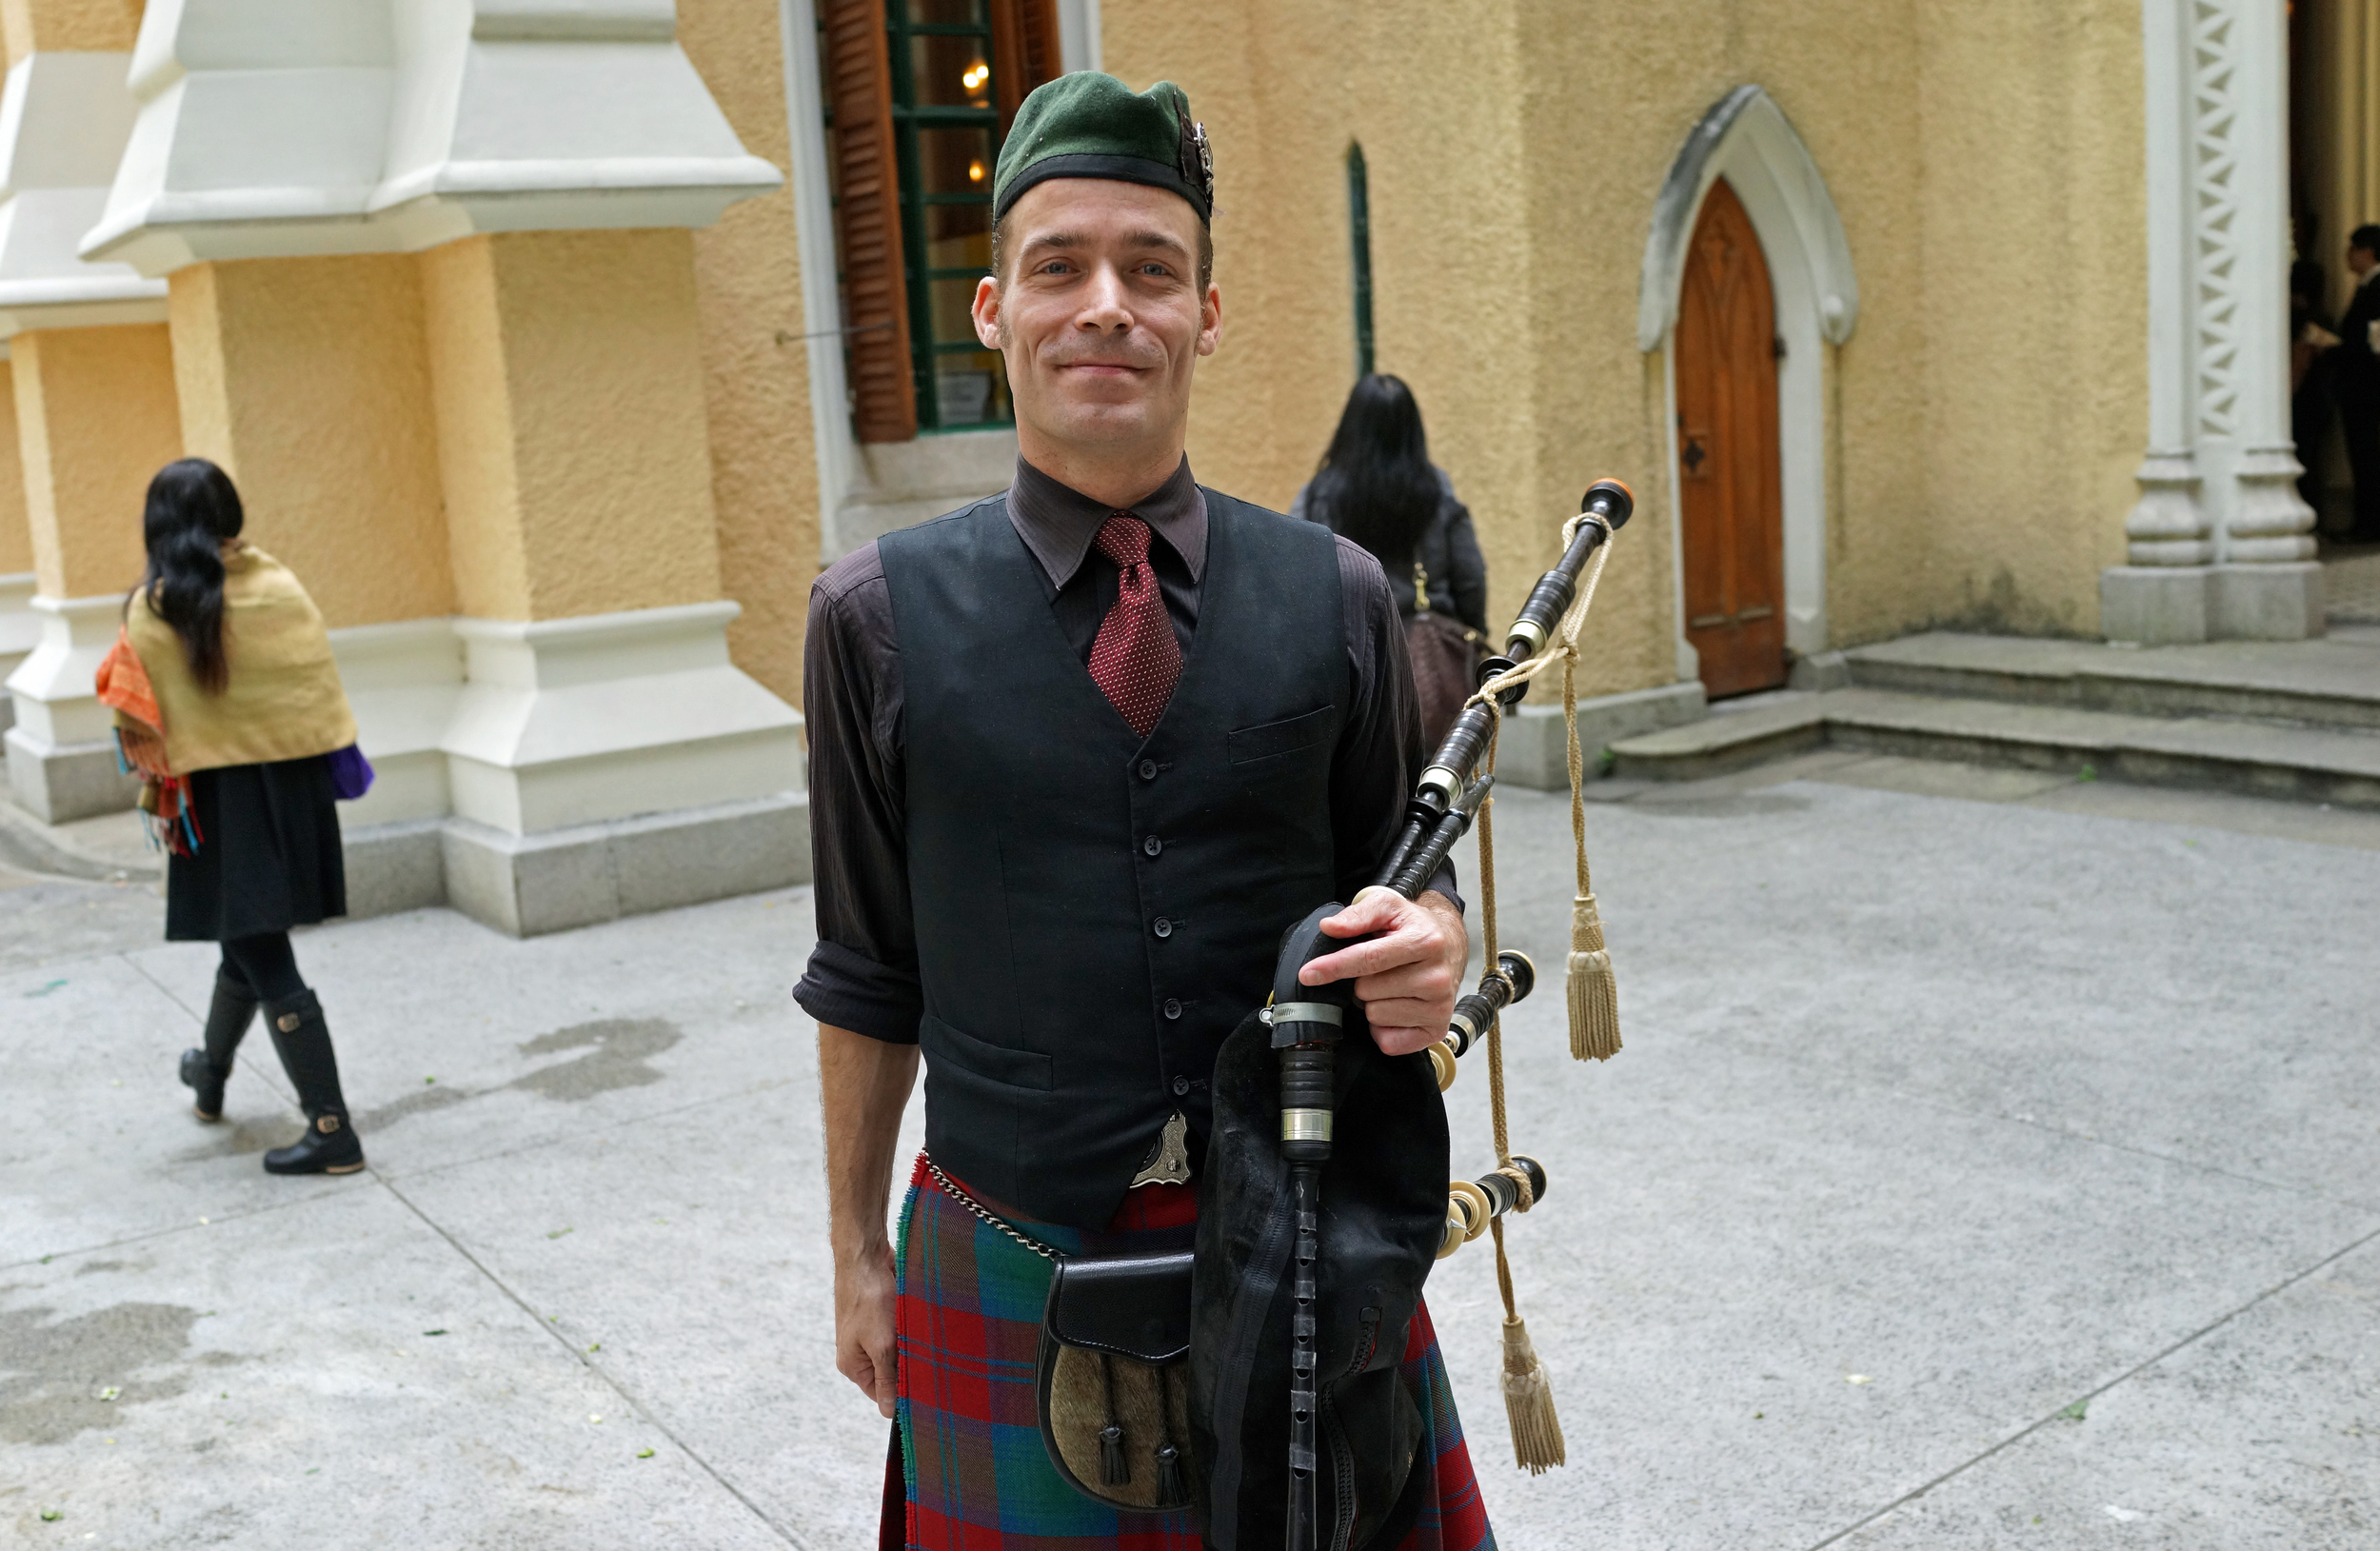 Not often I get to meet Canadian Bagpipe players at St. Johns Cathedral, it is right up there with a Hong Kong squirrel sighting! - this chap was playing at a funeral.